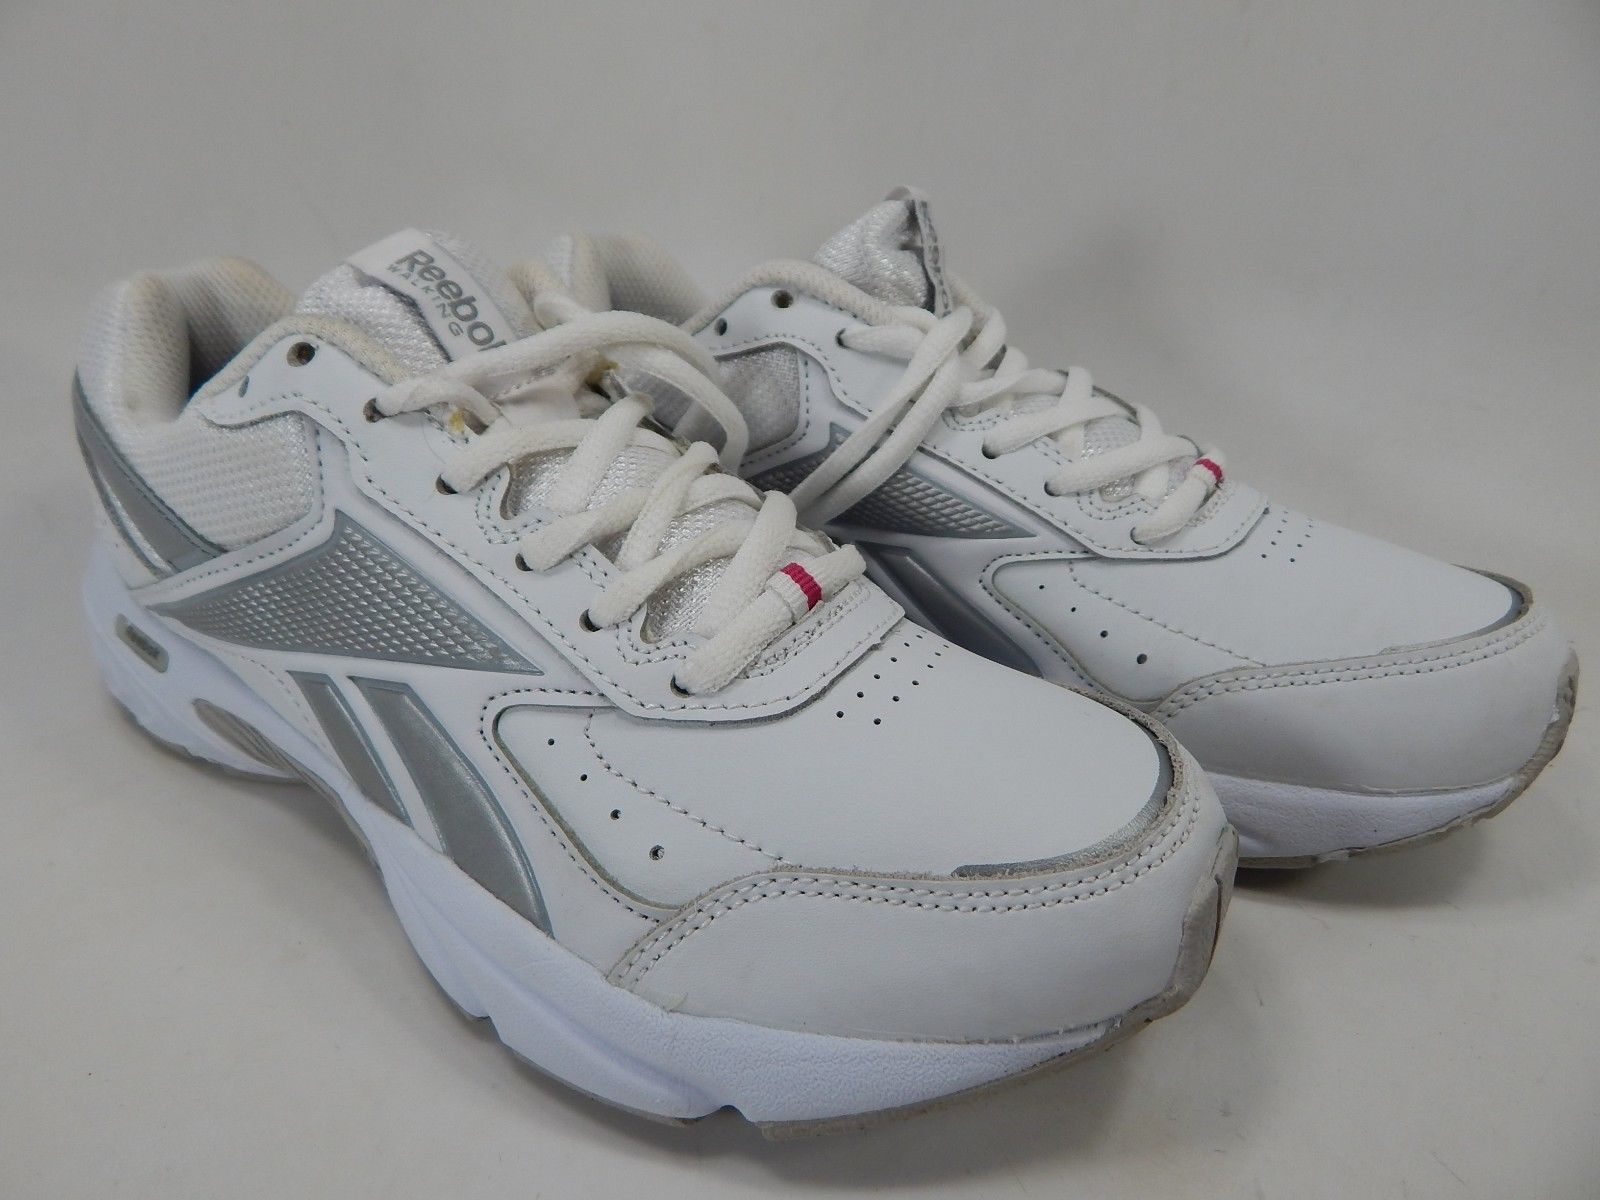 Reebok Daily Cushion 3.0 RS Size US 7.5 M (B) EU 38 Women's Running Shoes White